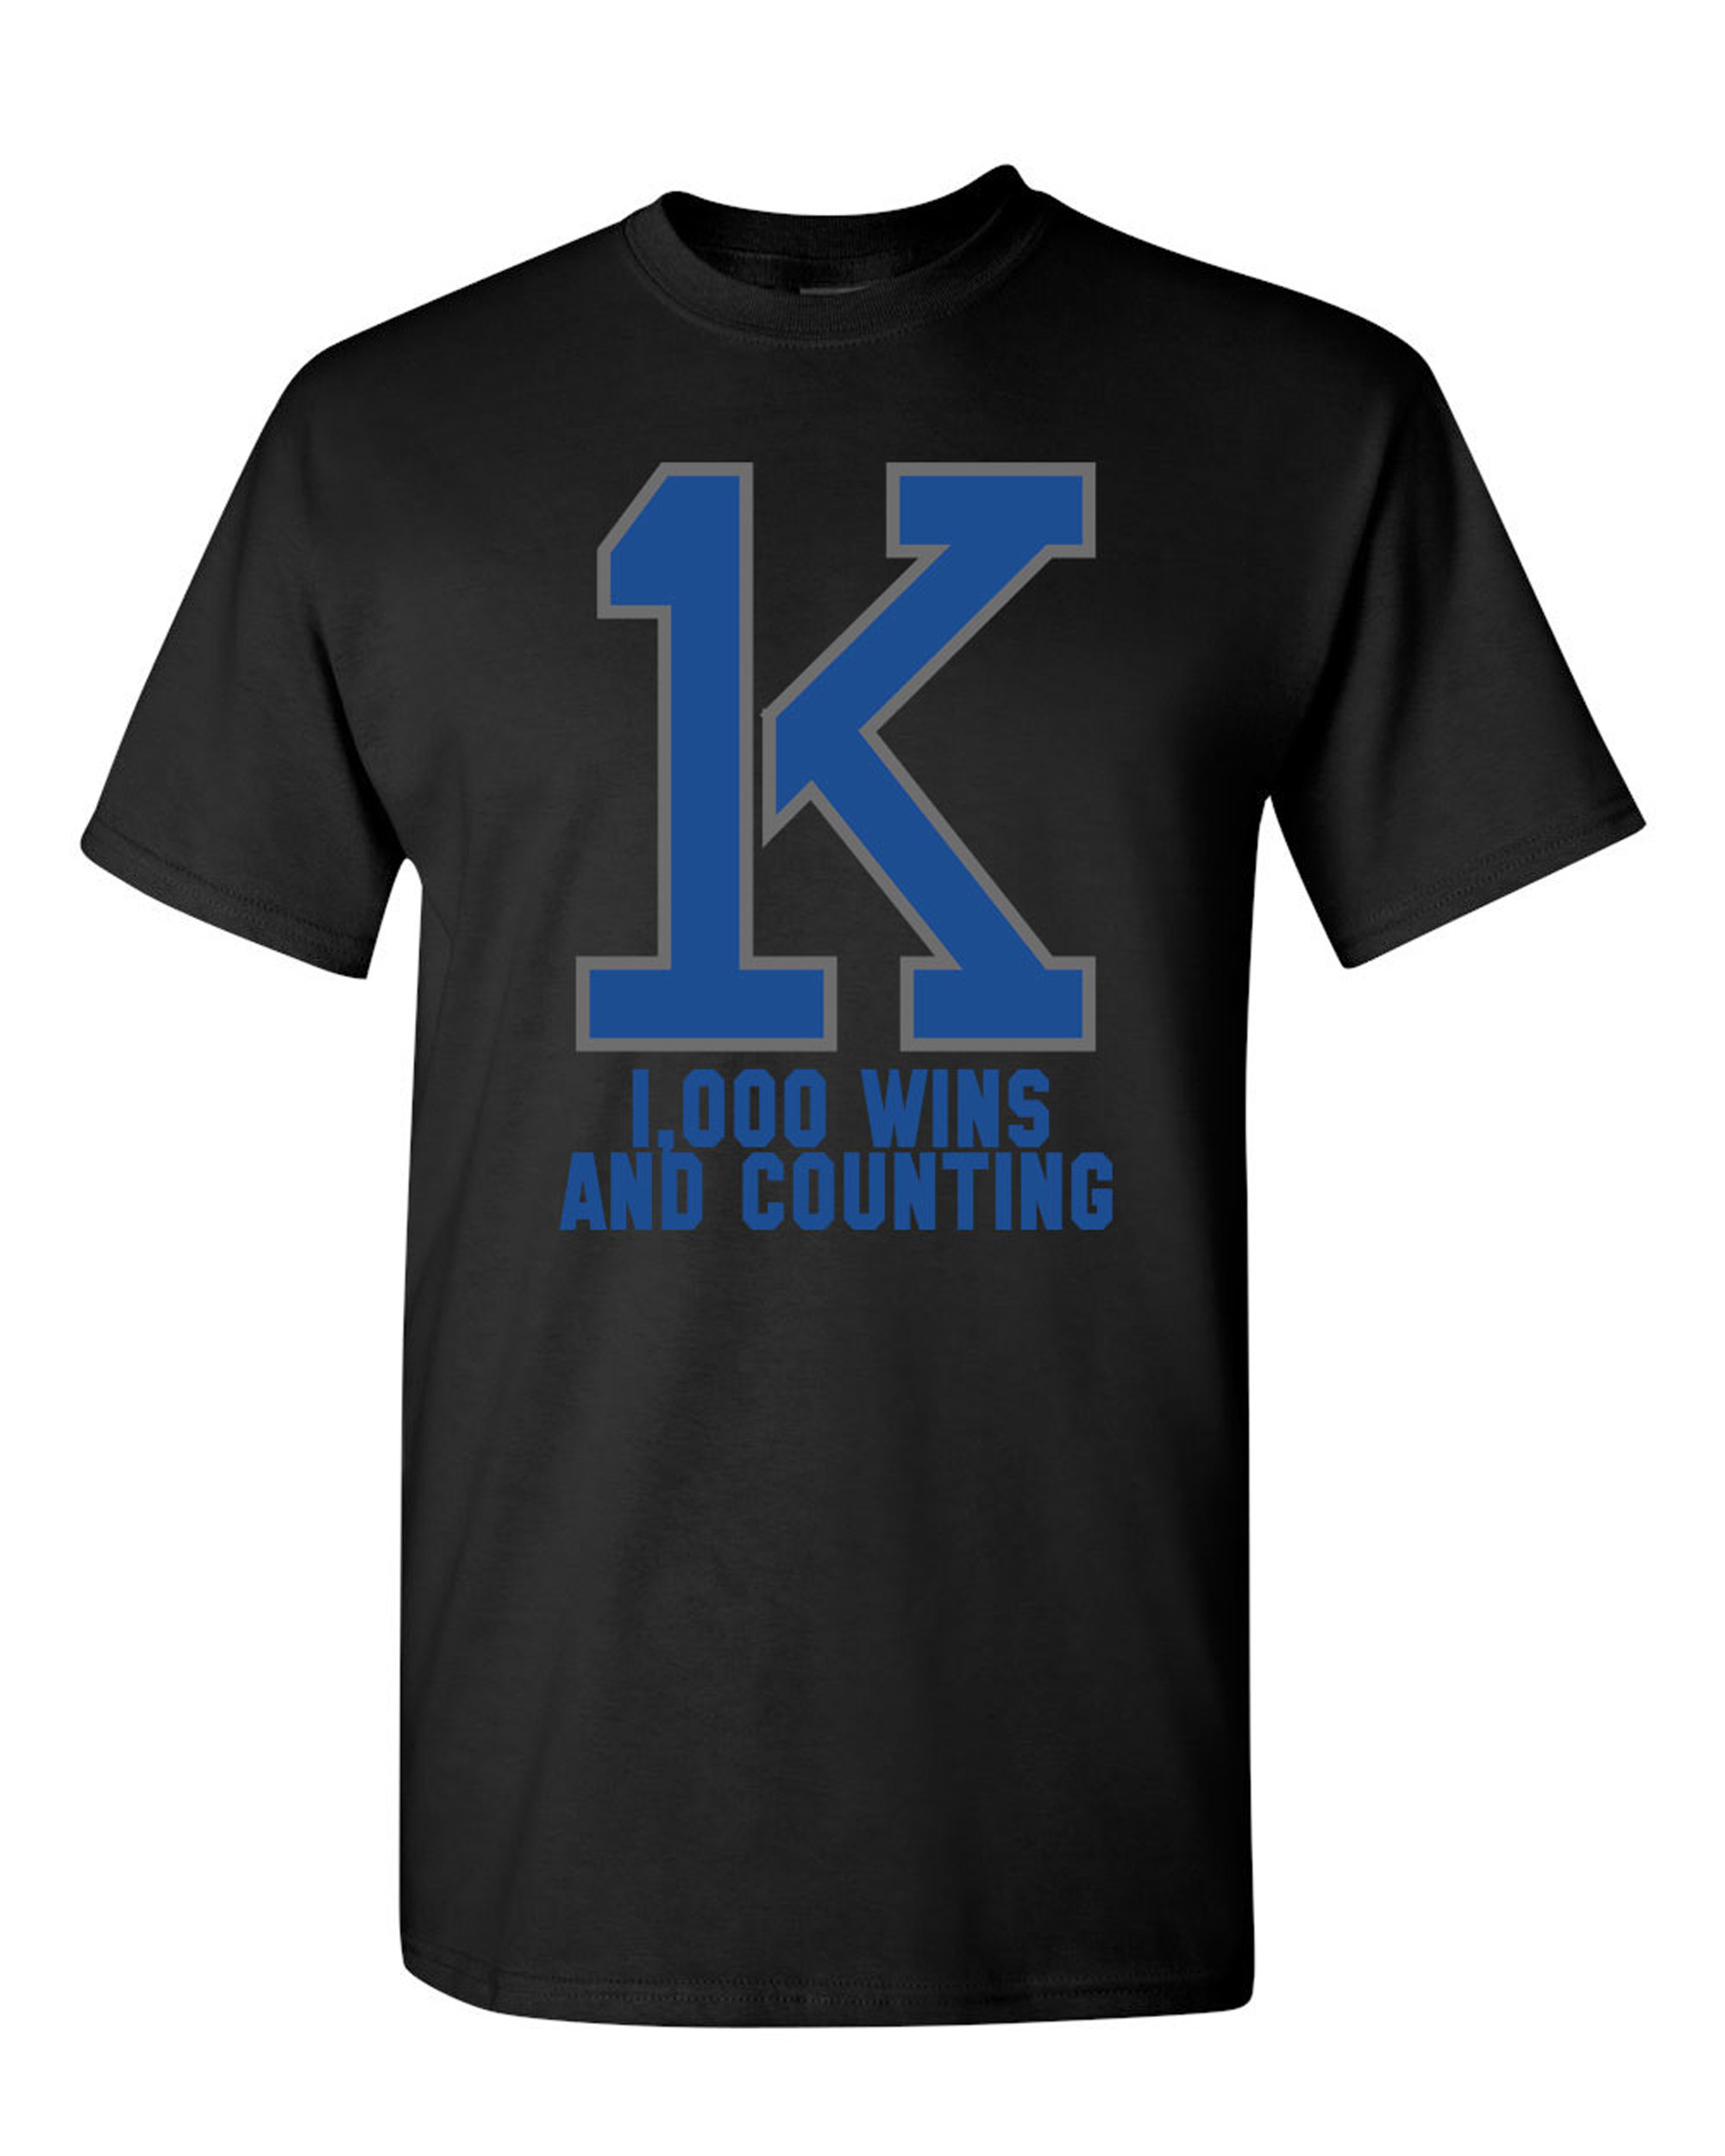 1K Coach K Bold Wins And Counting Basketball DT Adult T-Shirt Tee